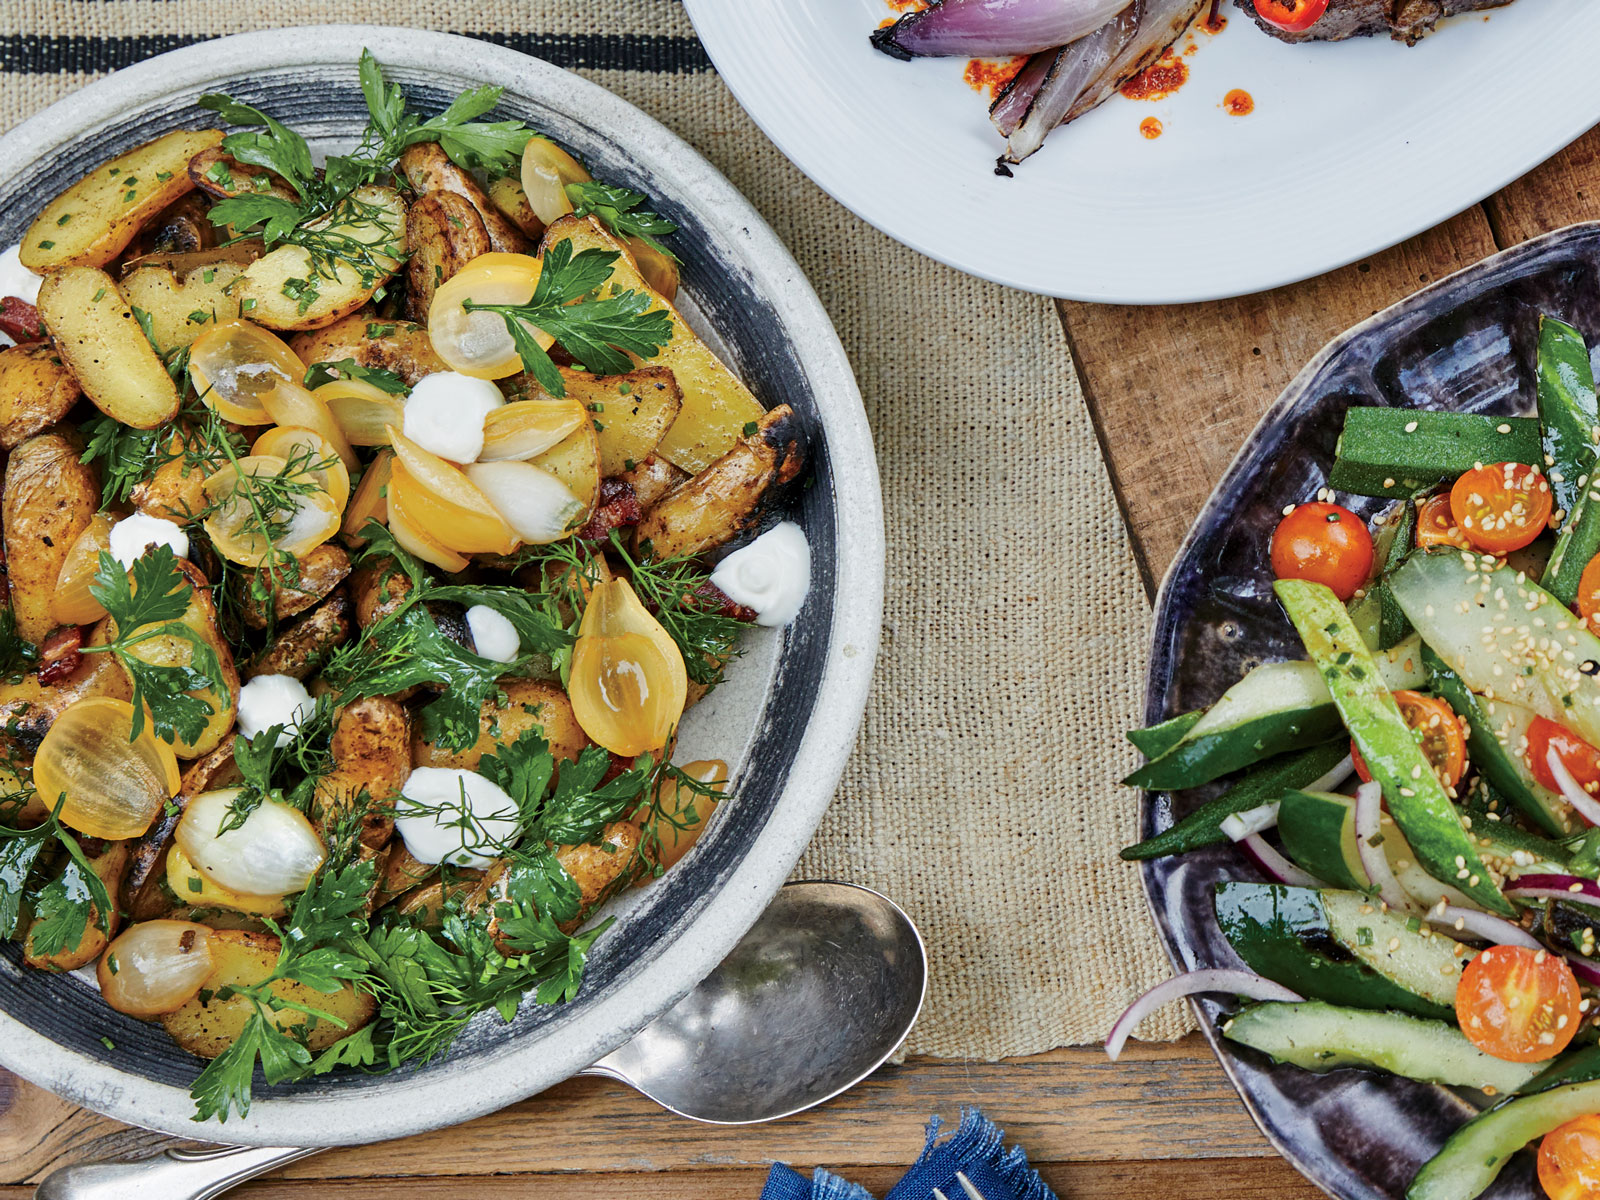 Bacony Fingerling Potato Salad with Spring Onions